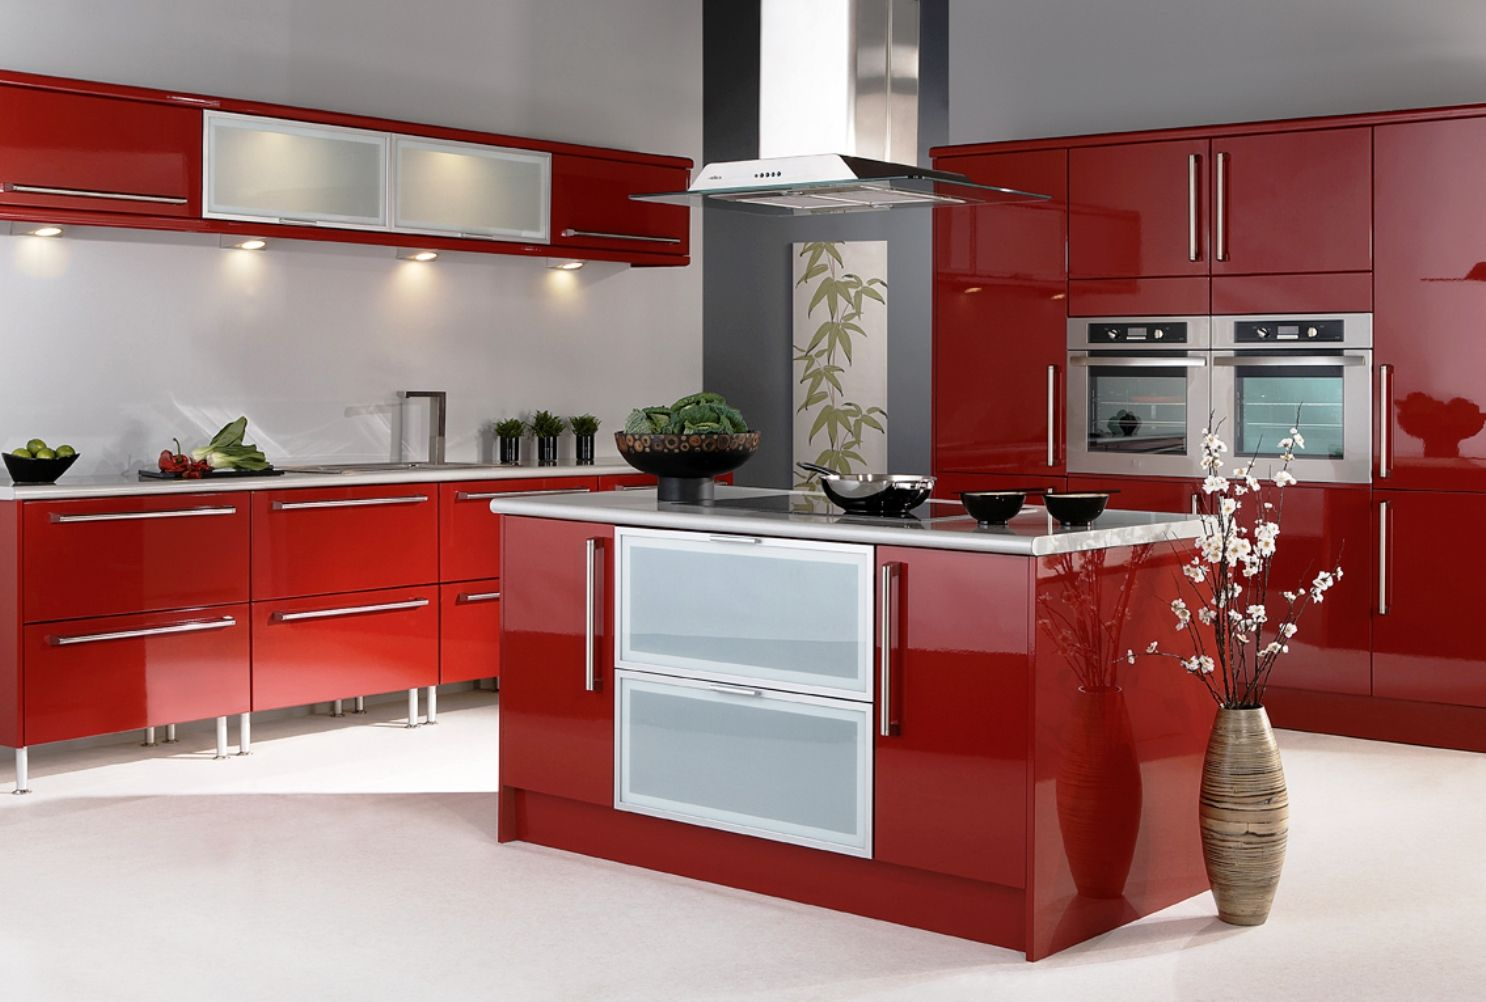 Endearing High End Red Kitchen Cabinet Design Featuring Electric